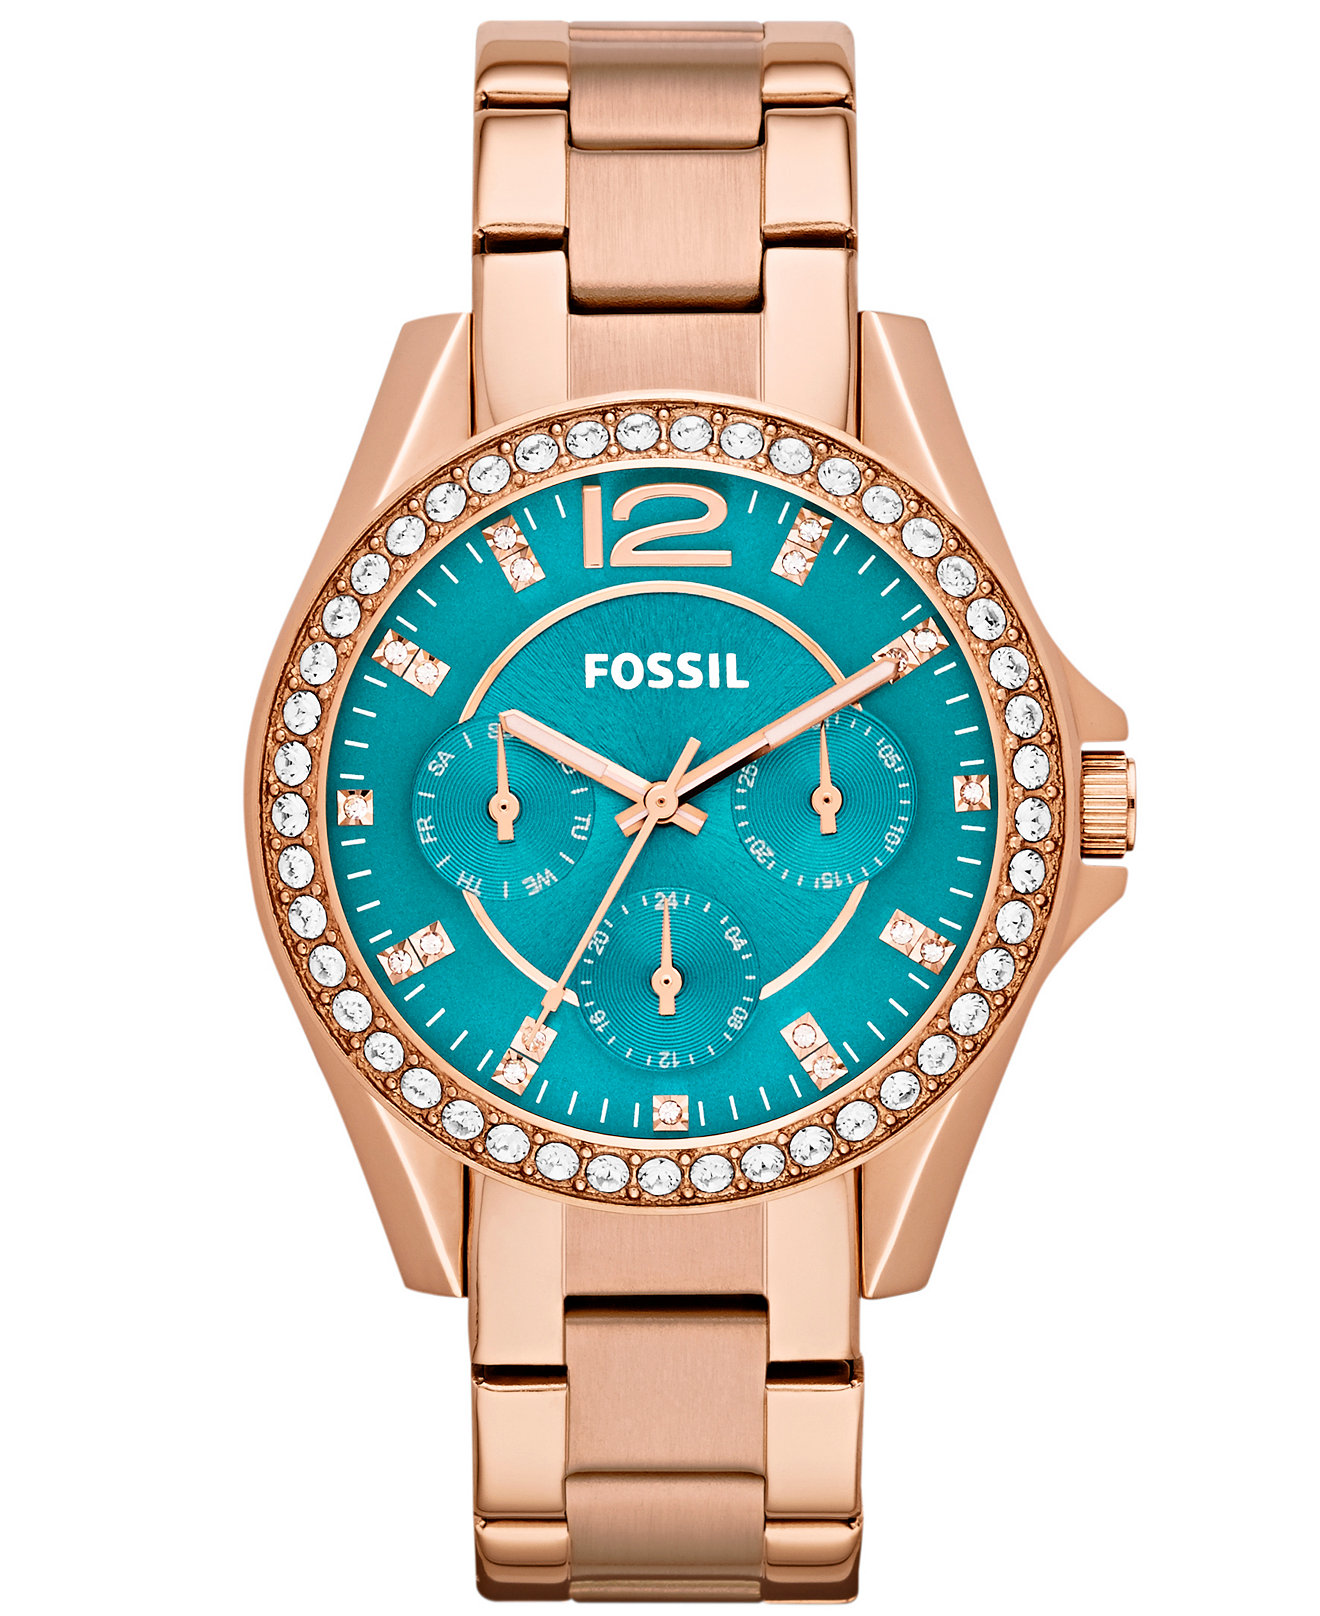 Fossil Watches For Women Rose Gold Fossil Women 39 s Riley Rose